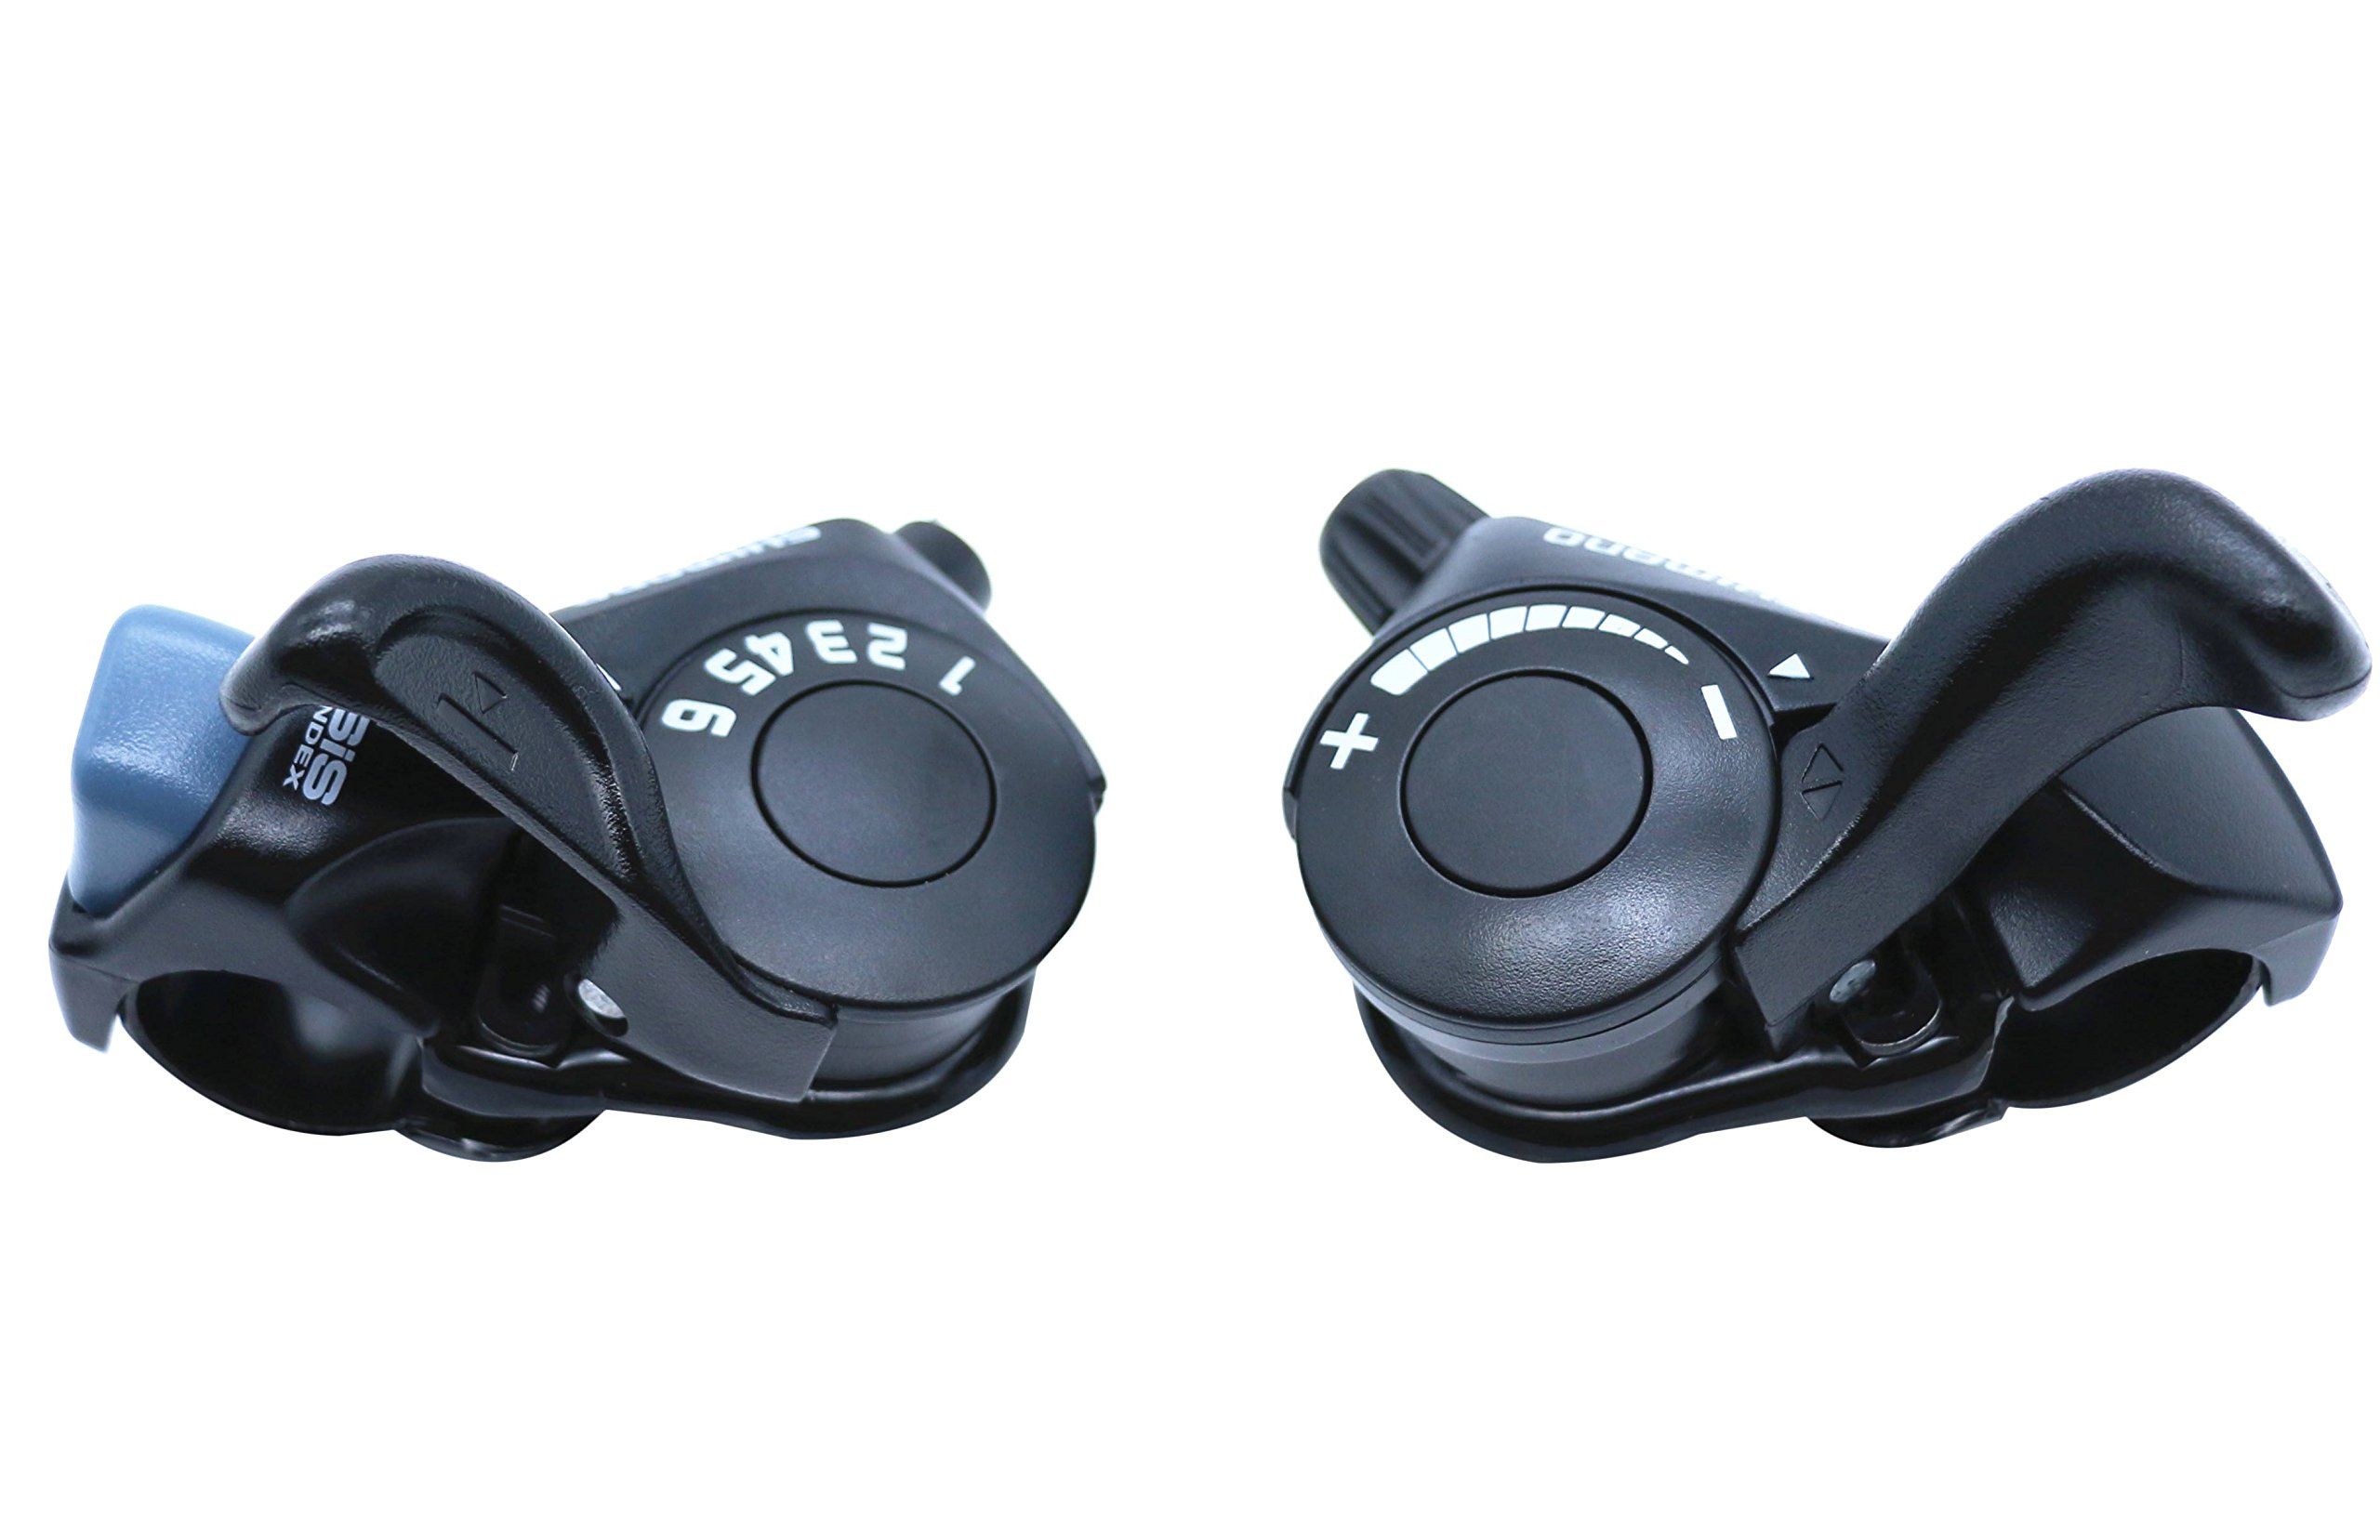 INKESKY Shimano Tourney SL-TX30 3x6 Speed MTB Bike Thumb Gear Shifter with Inner Shift Cables (1 Pair) by INKESKY (Image #2)